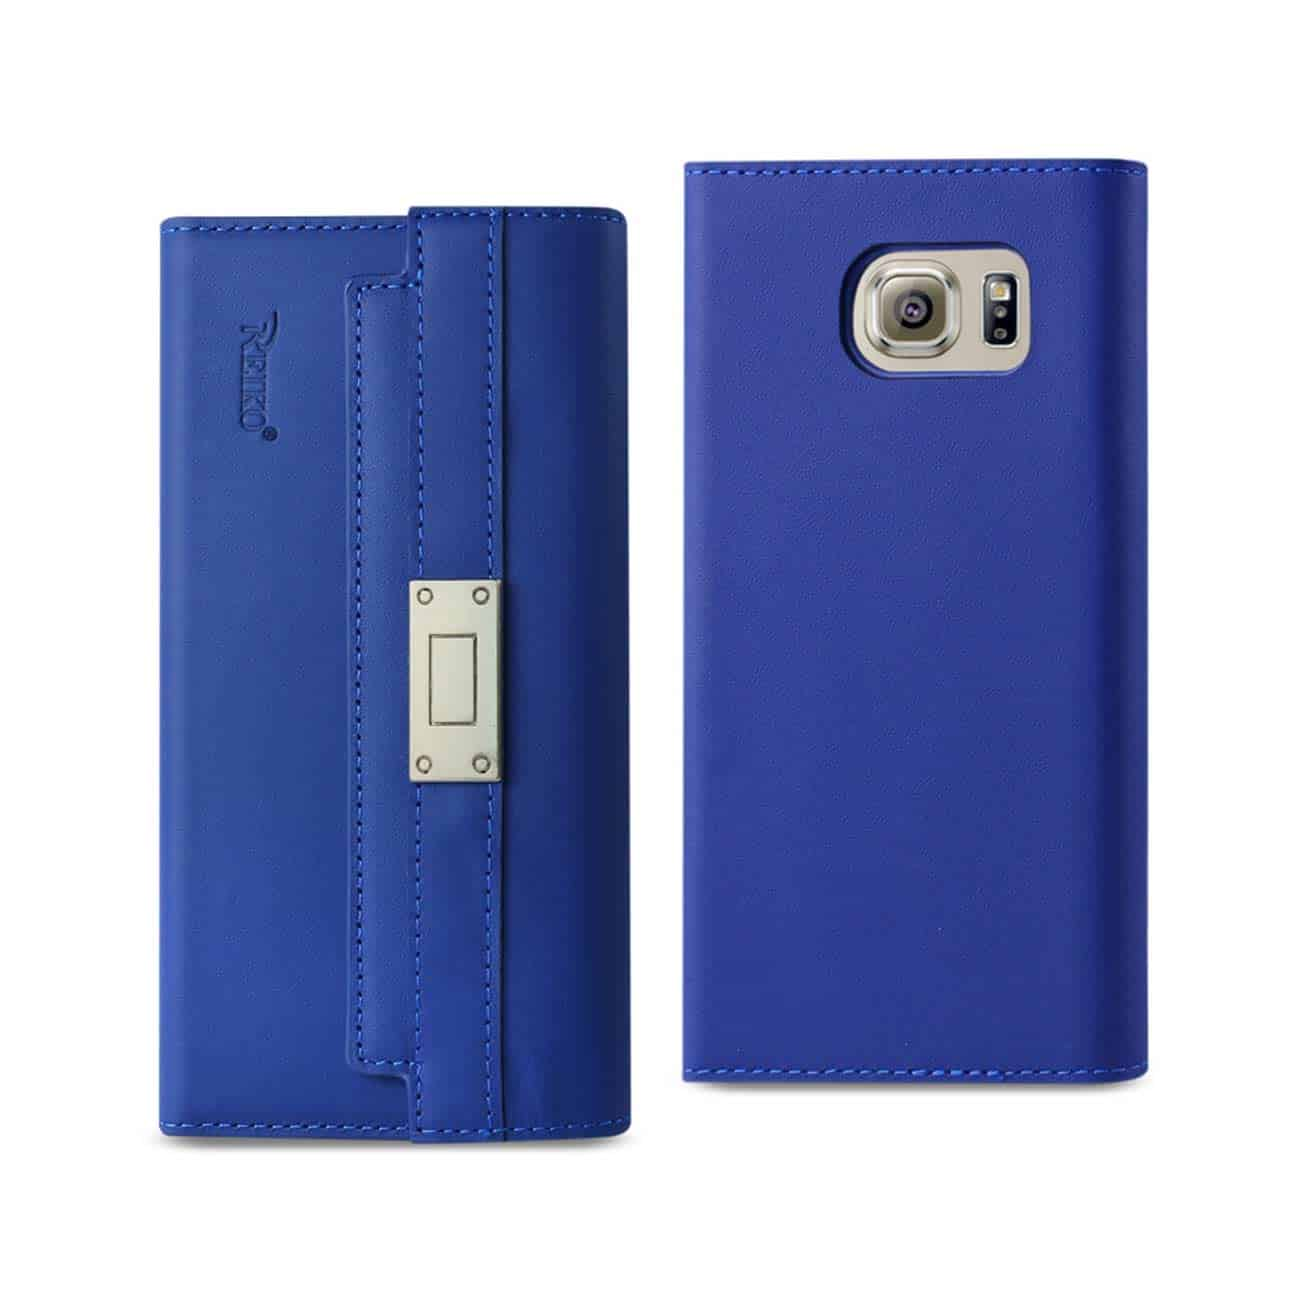 SAMSUNG GALAXY S6 GENUINE LEATHER RFID WALLET CASE AND METAL BUCKLE BELT IN ULTRAMARINE